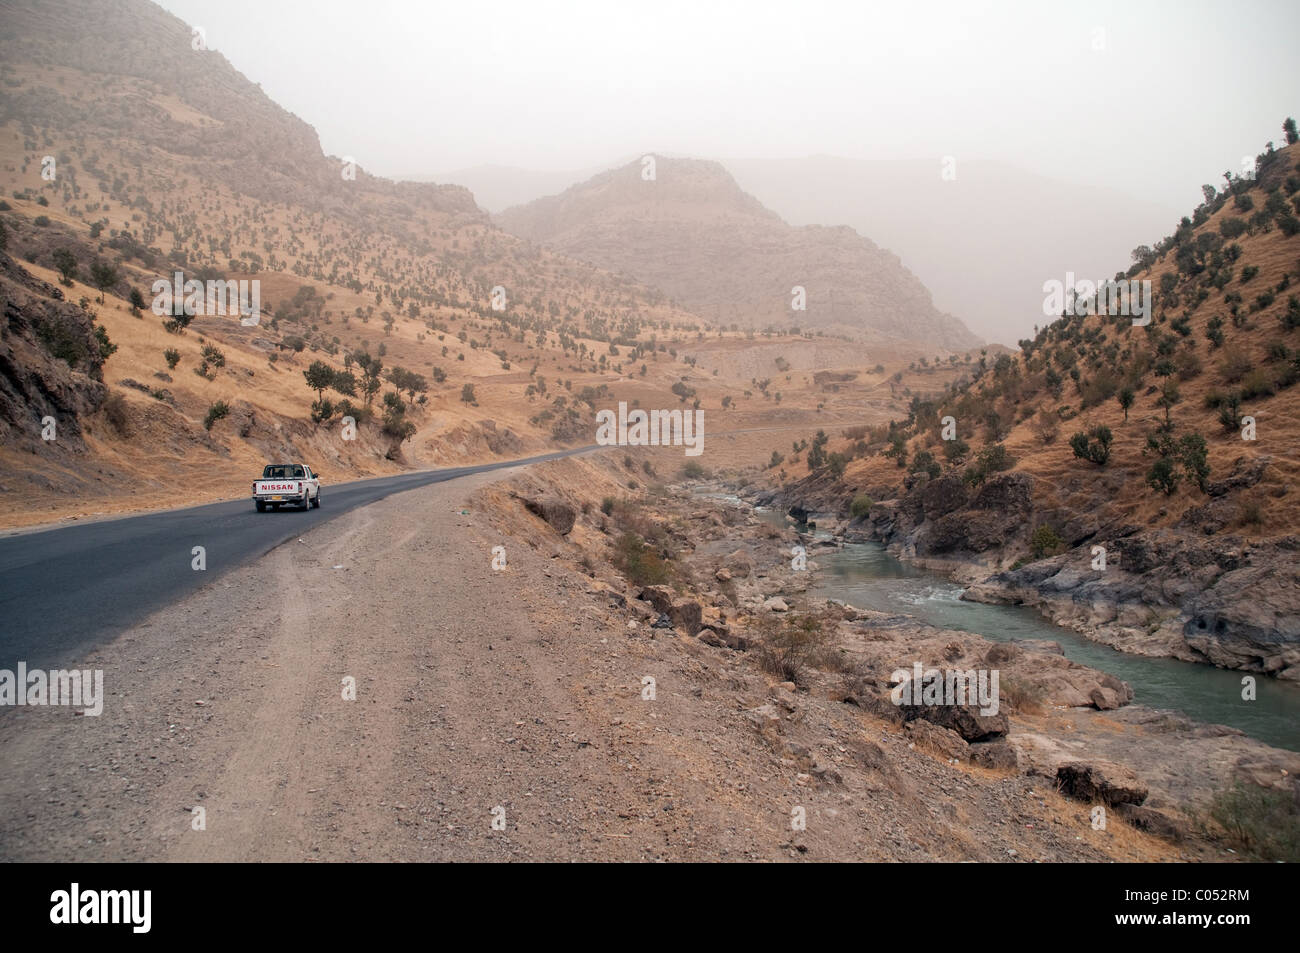 The Haji Omran Road, in the Zagros Mountains region of Iraqi Kurdistan, running along the Choman River to the Iran - Stock Image